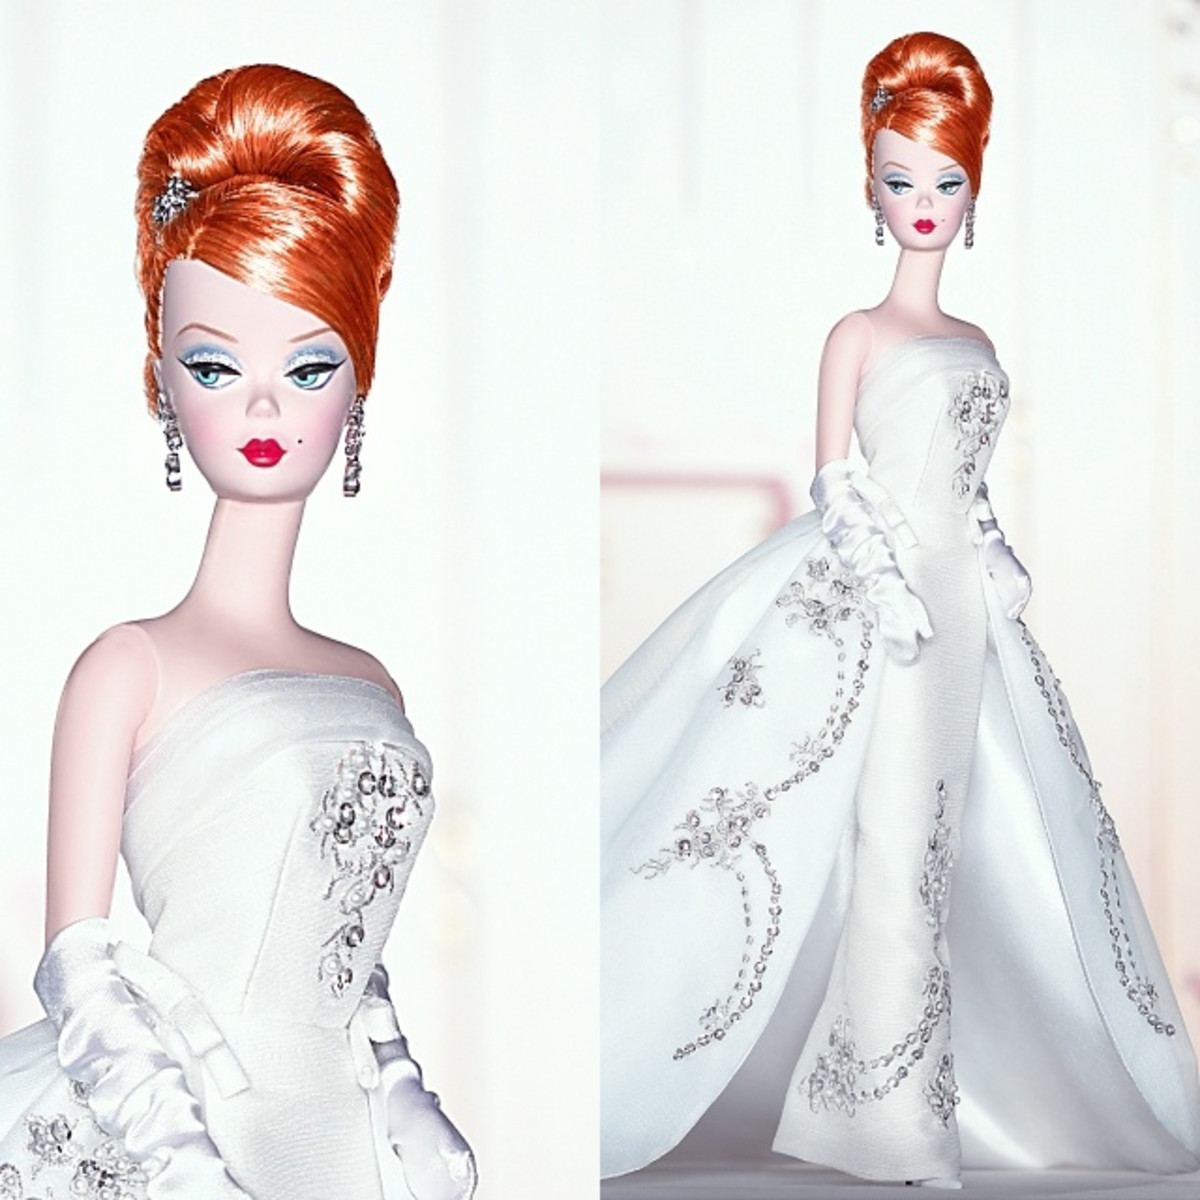 redhead Bridal Barbie doll in white elegant wedding dress